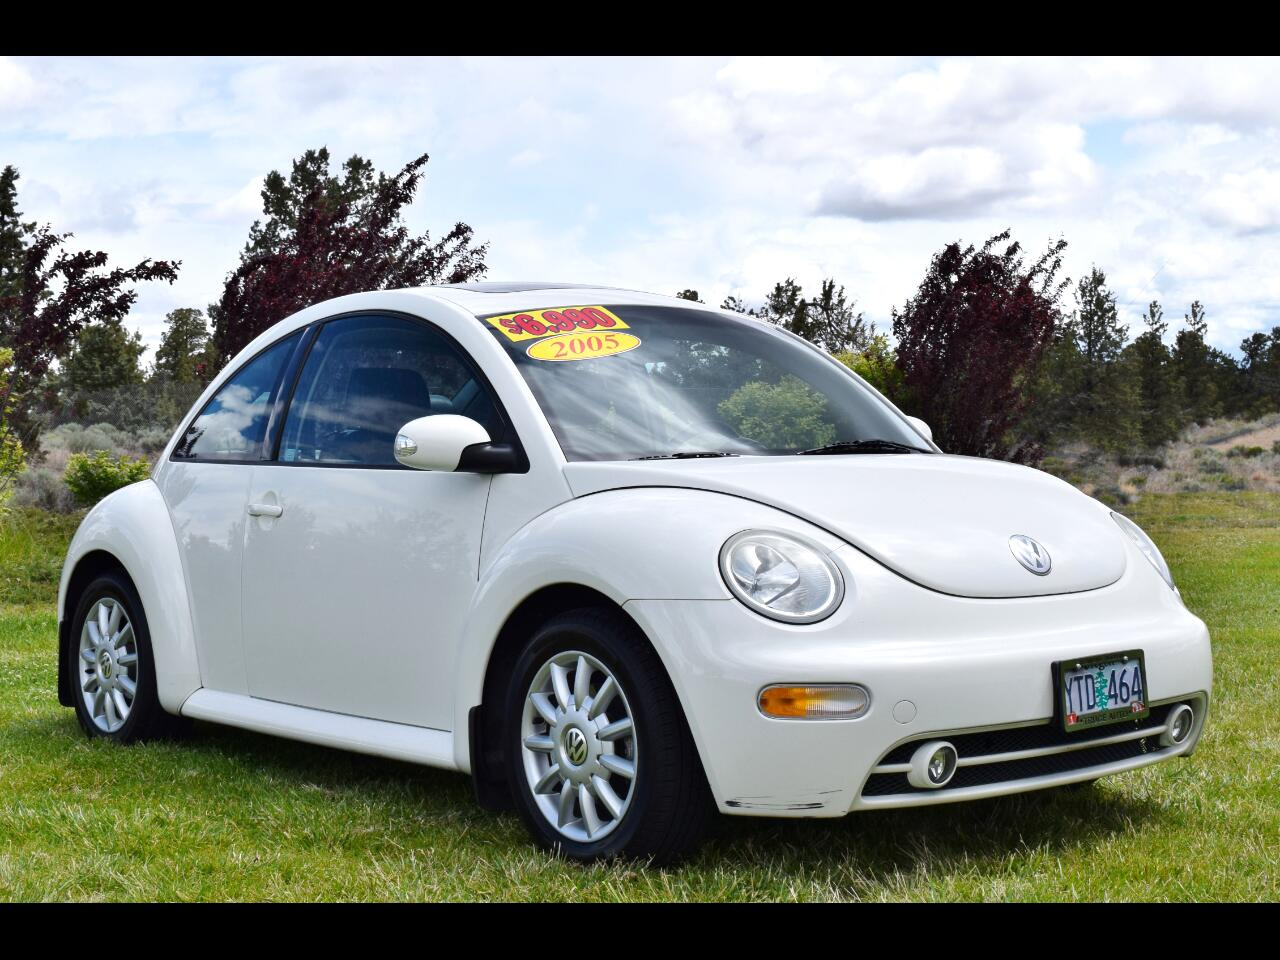 Volkswagen New Beetle Coupe 2dr Cpe GLS Manual 2005